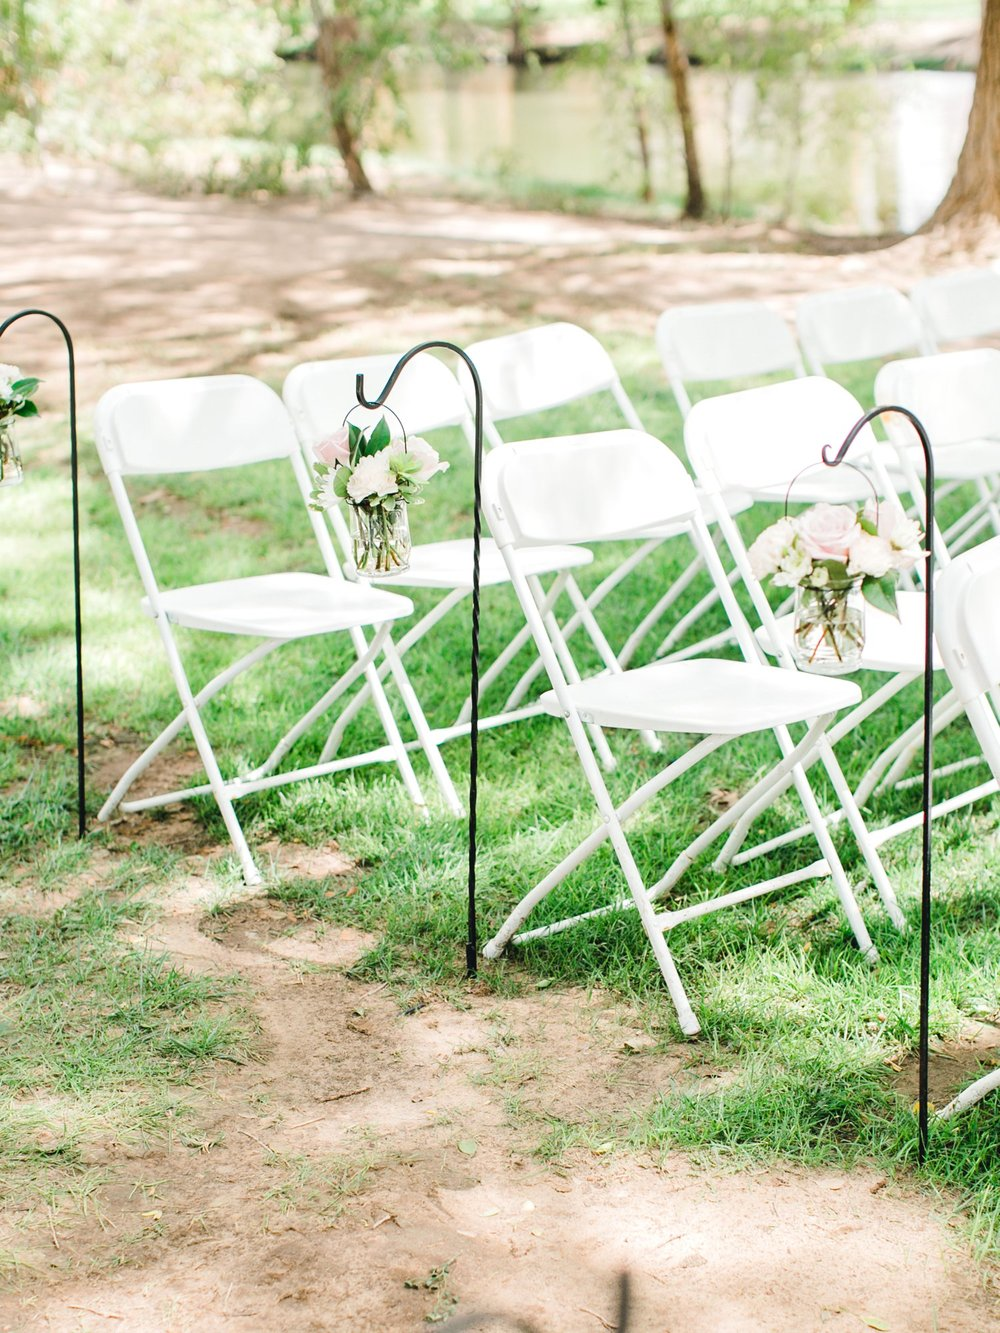 SARAH_AND_GEOFFREY_SHARP_SPIRIT_RANCH_WEDDING_ALLEEJ_LUBBOCK_TX_0030.jpg